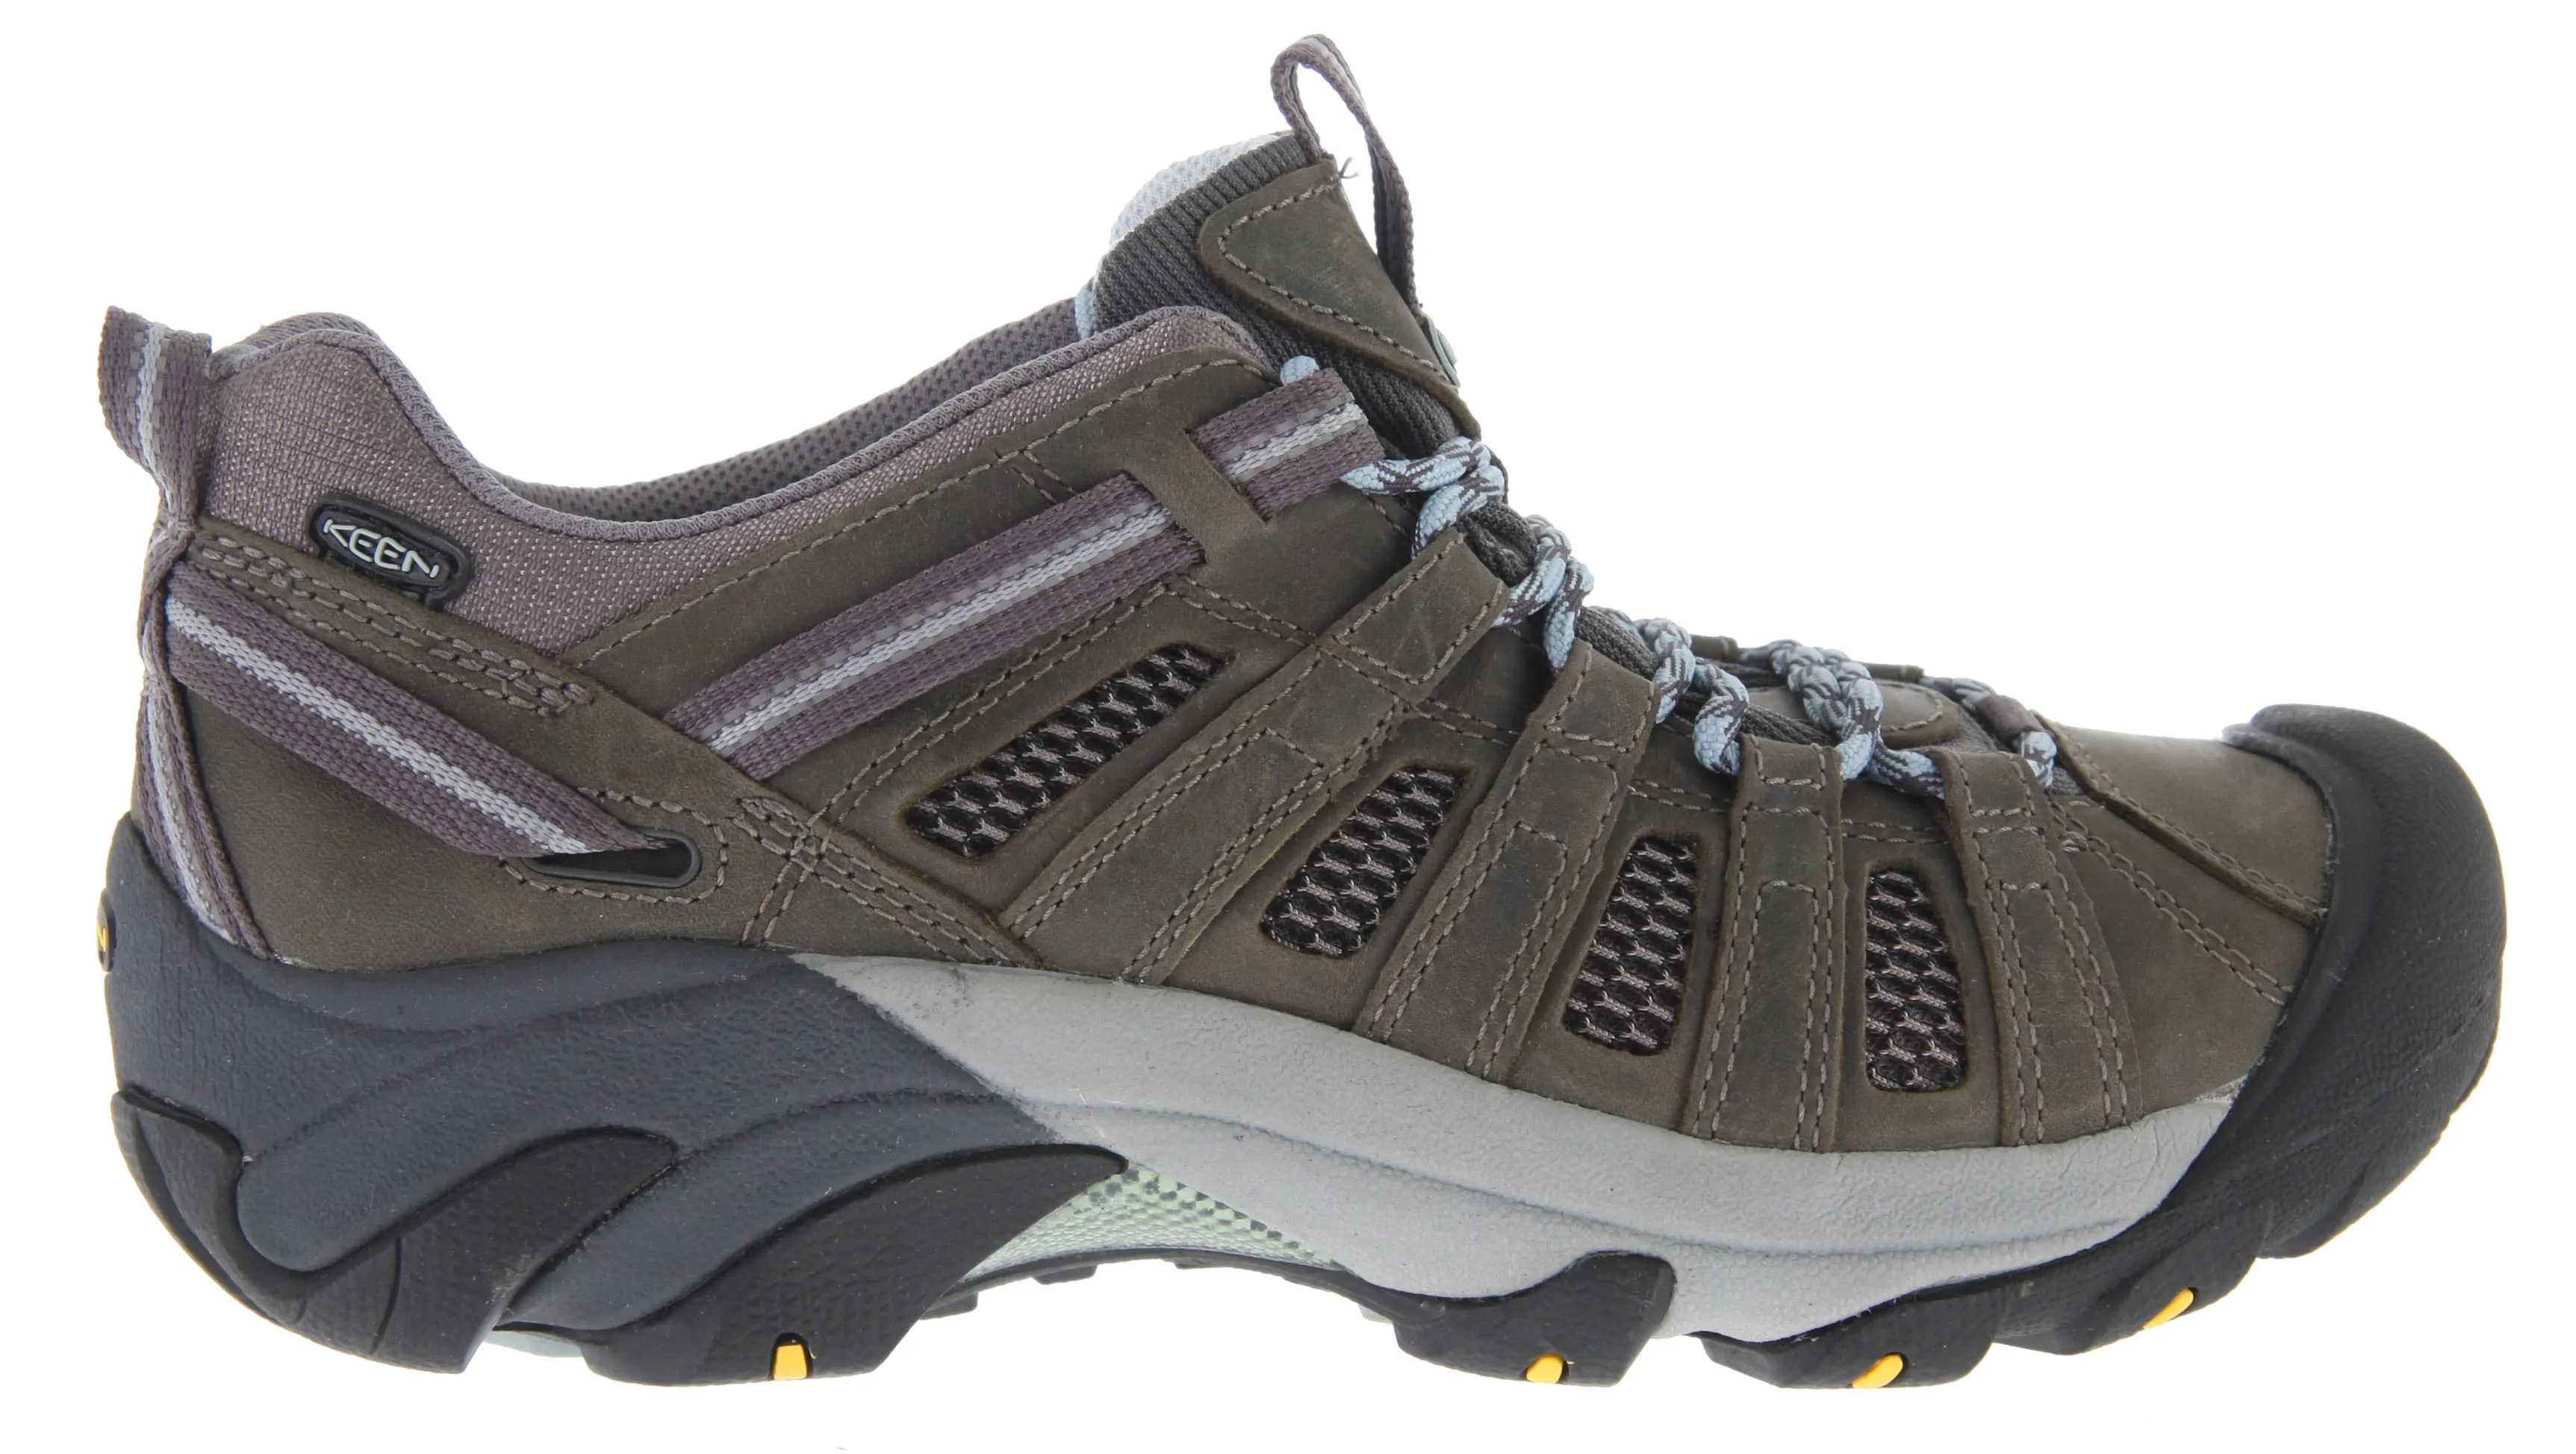 Keen Shoes Outlet Locations